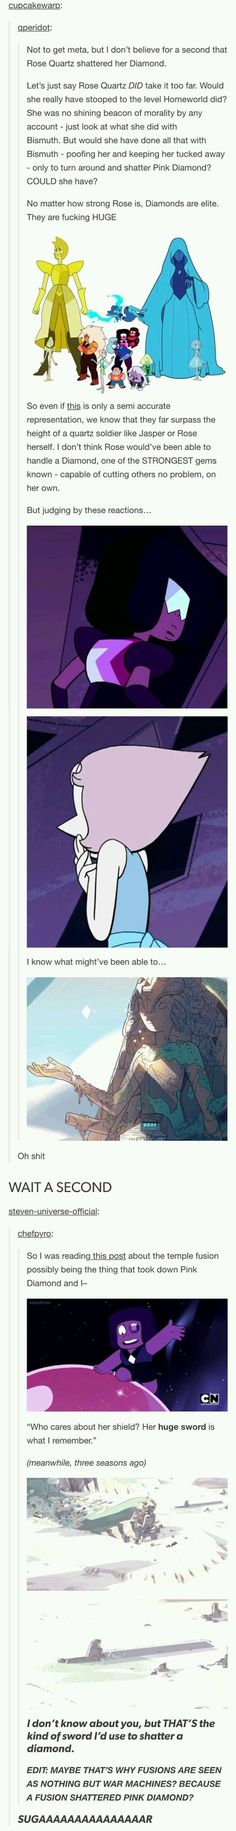 Idk I feel like in some cases fusions are the gem equivalent of a marriage.